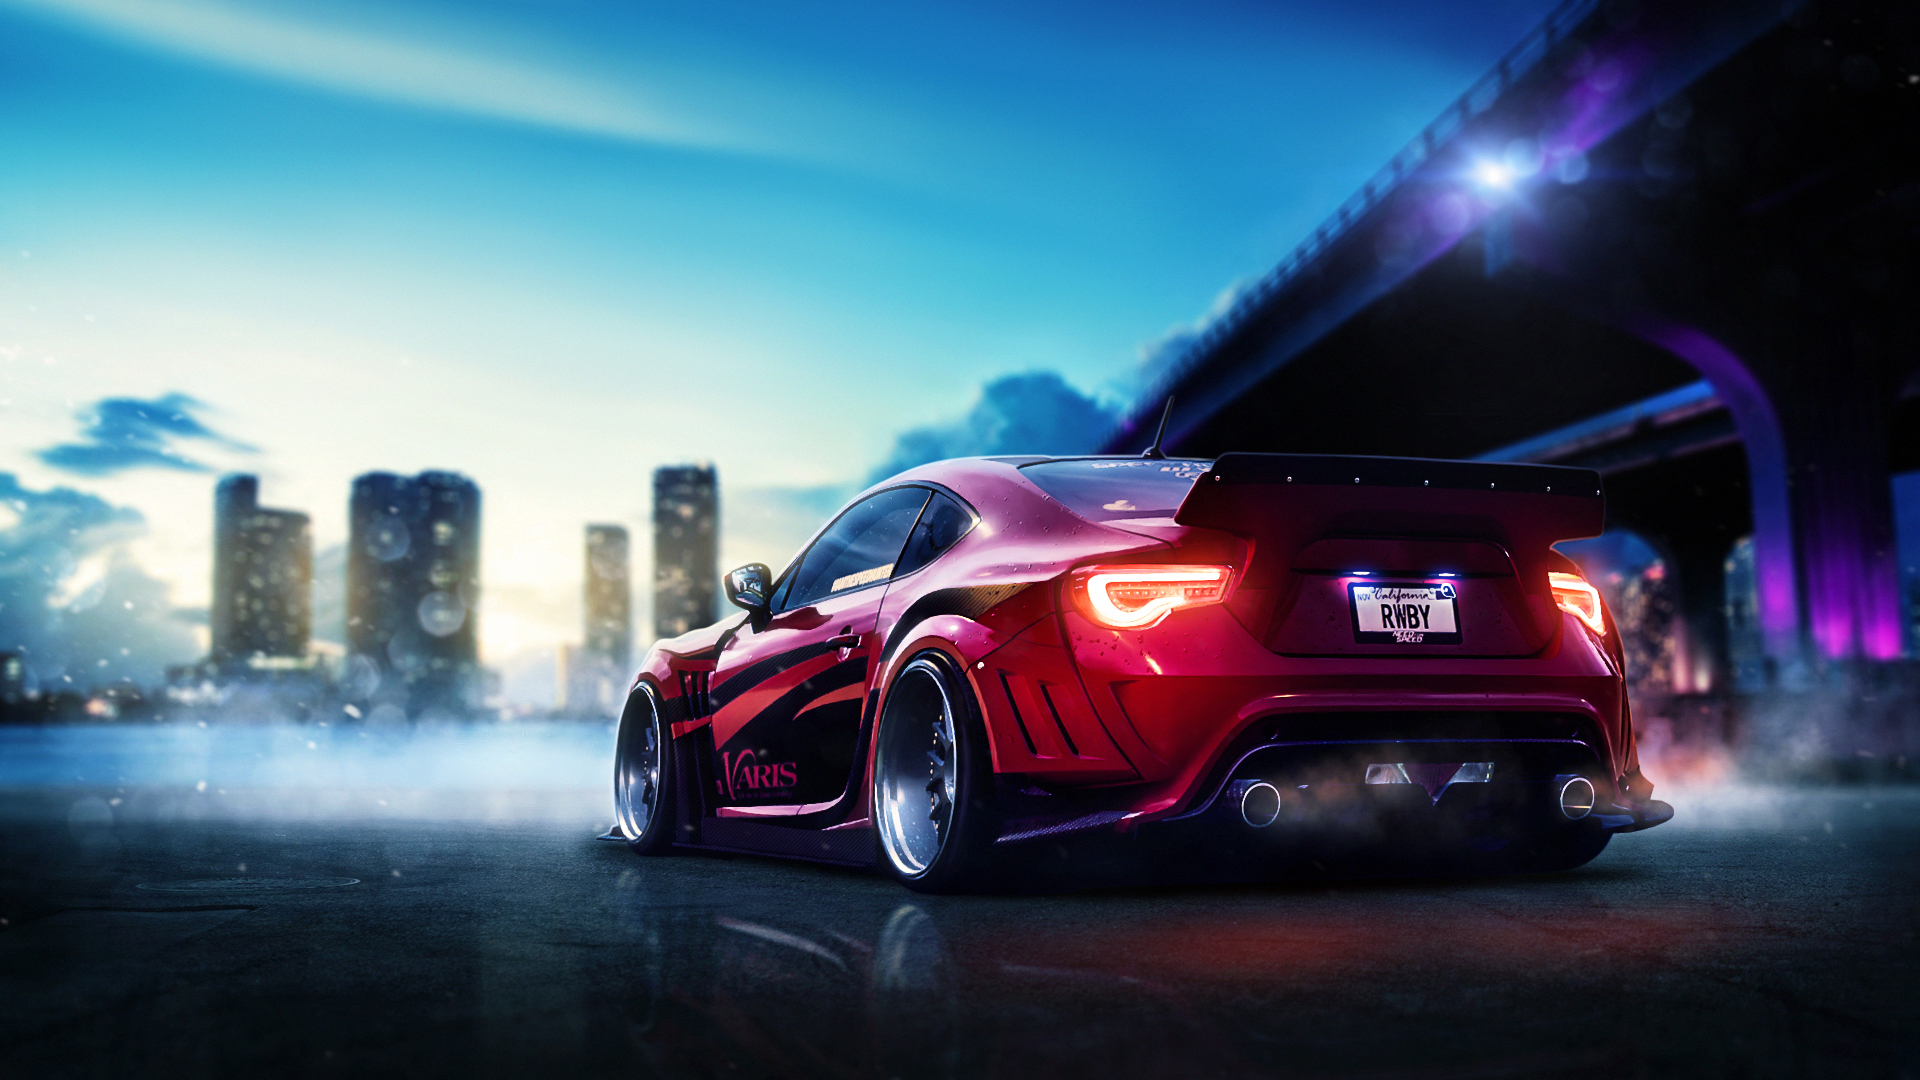 Toyota GT86 Wallpaper HD Car Wallpapers 1920x1080